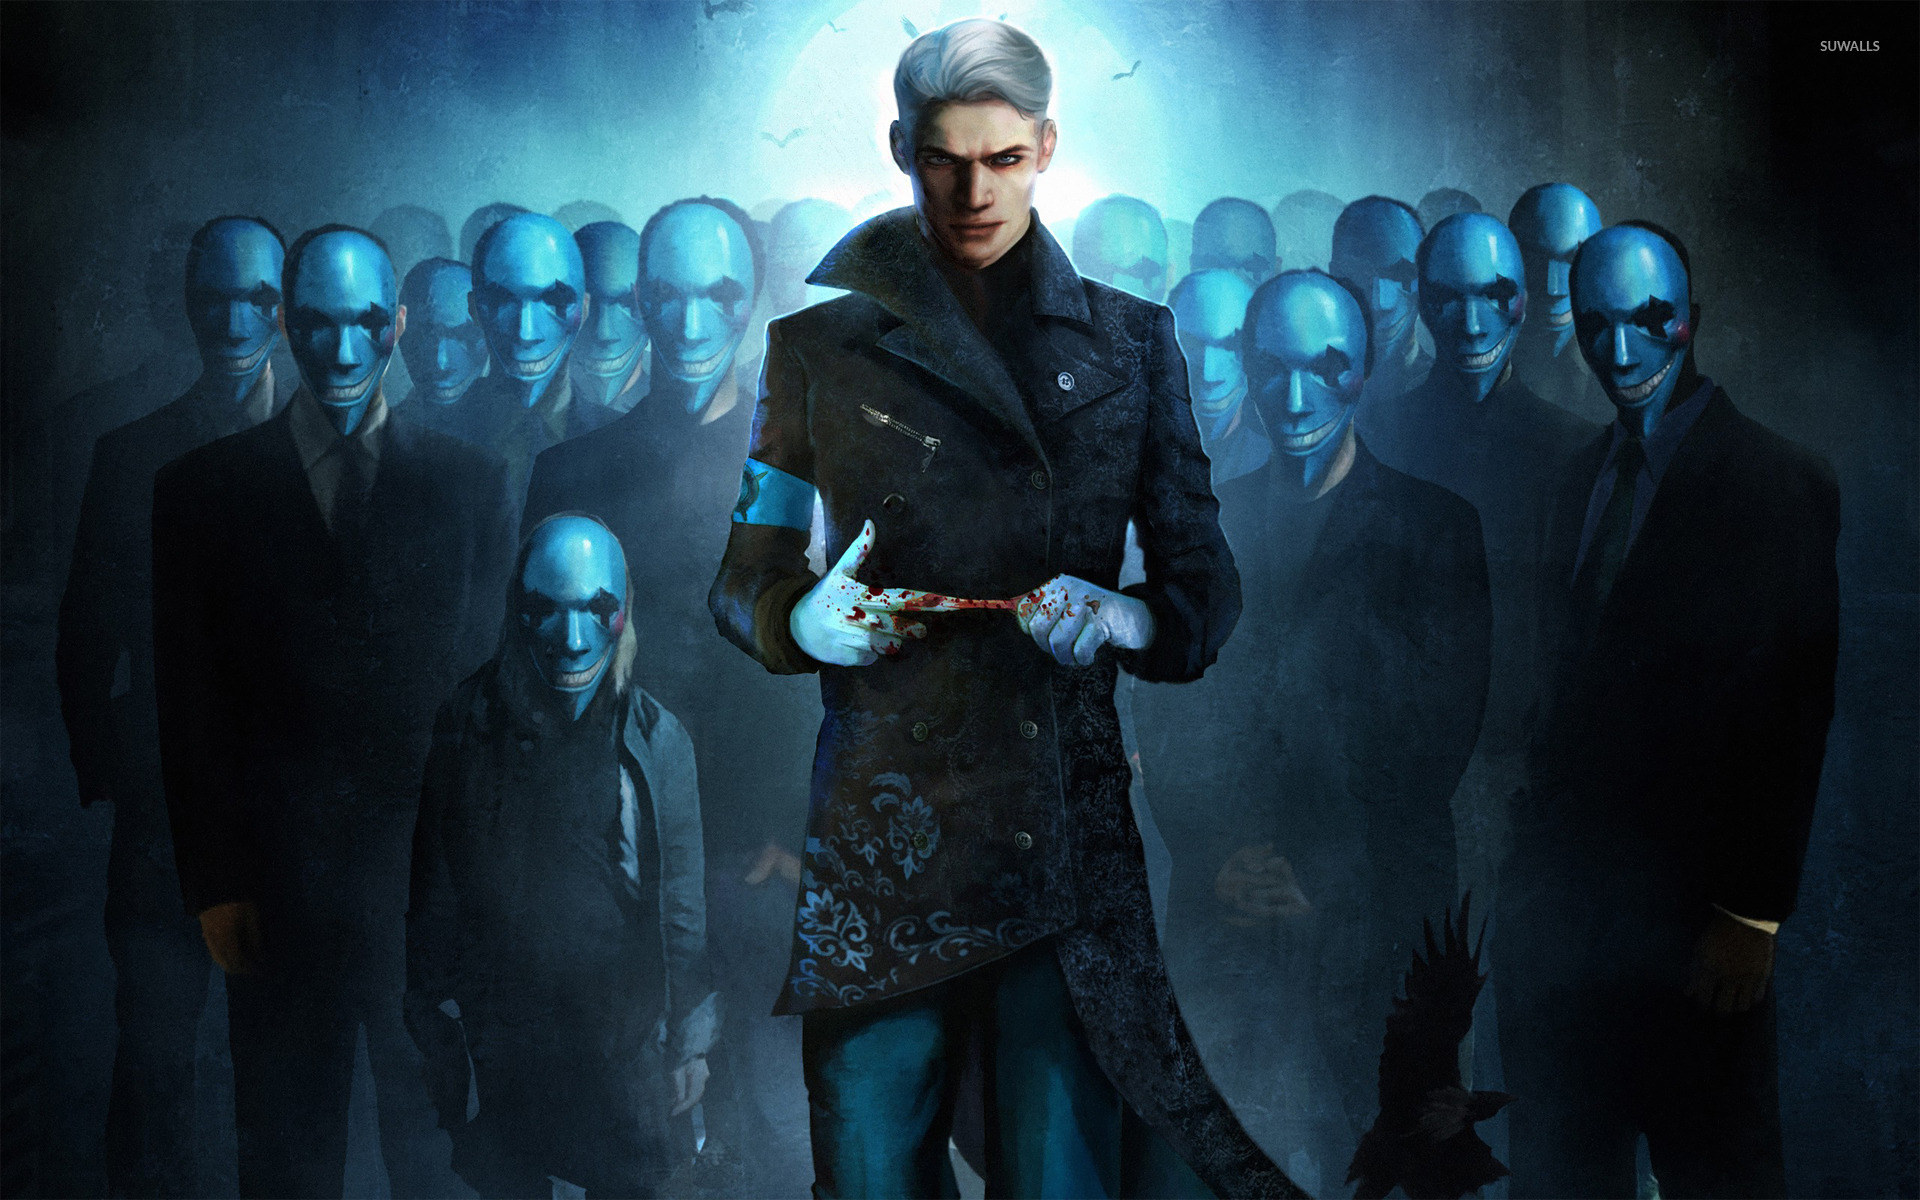 Vergil   Devil May Cry 5 wallpaper   Game wallpapers   18333 1680x1050